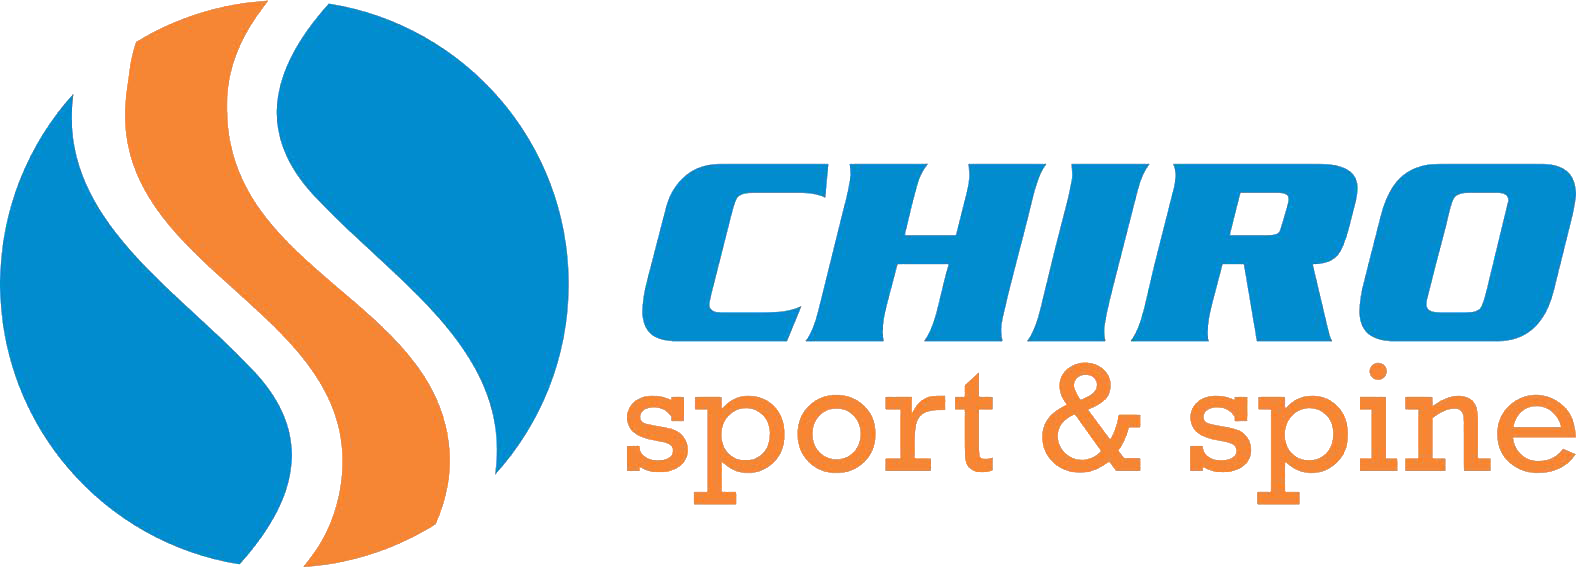 Chirosport and Spine